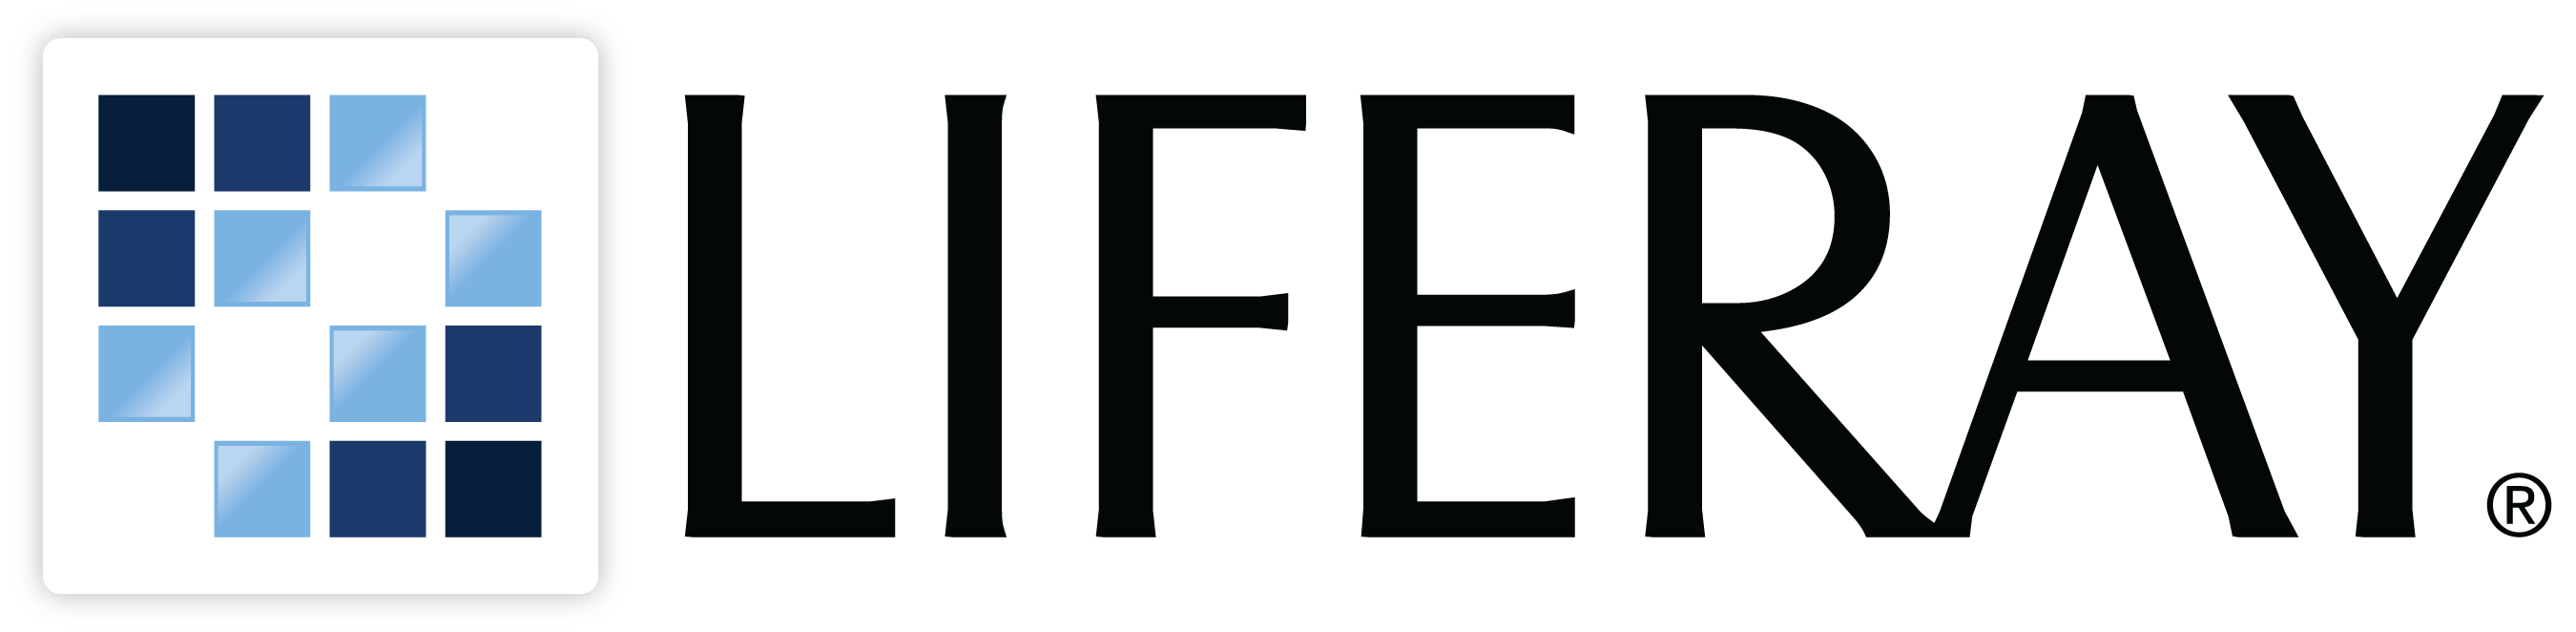 liferay-logo.png